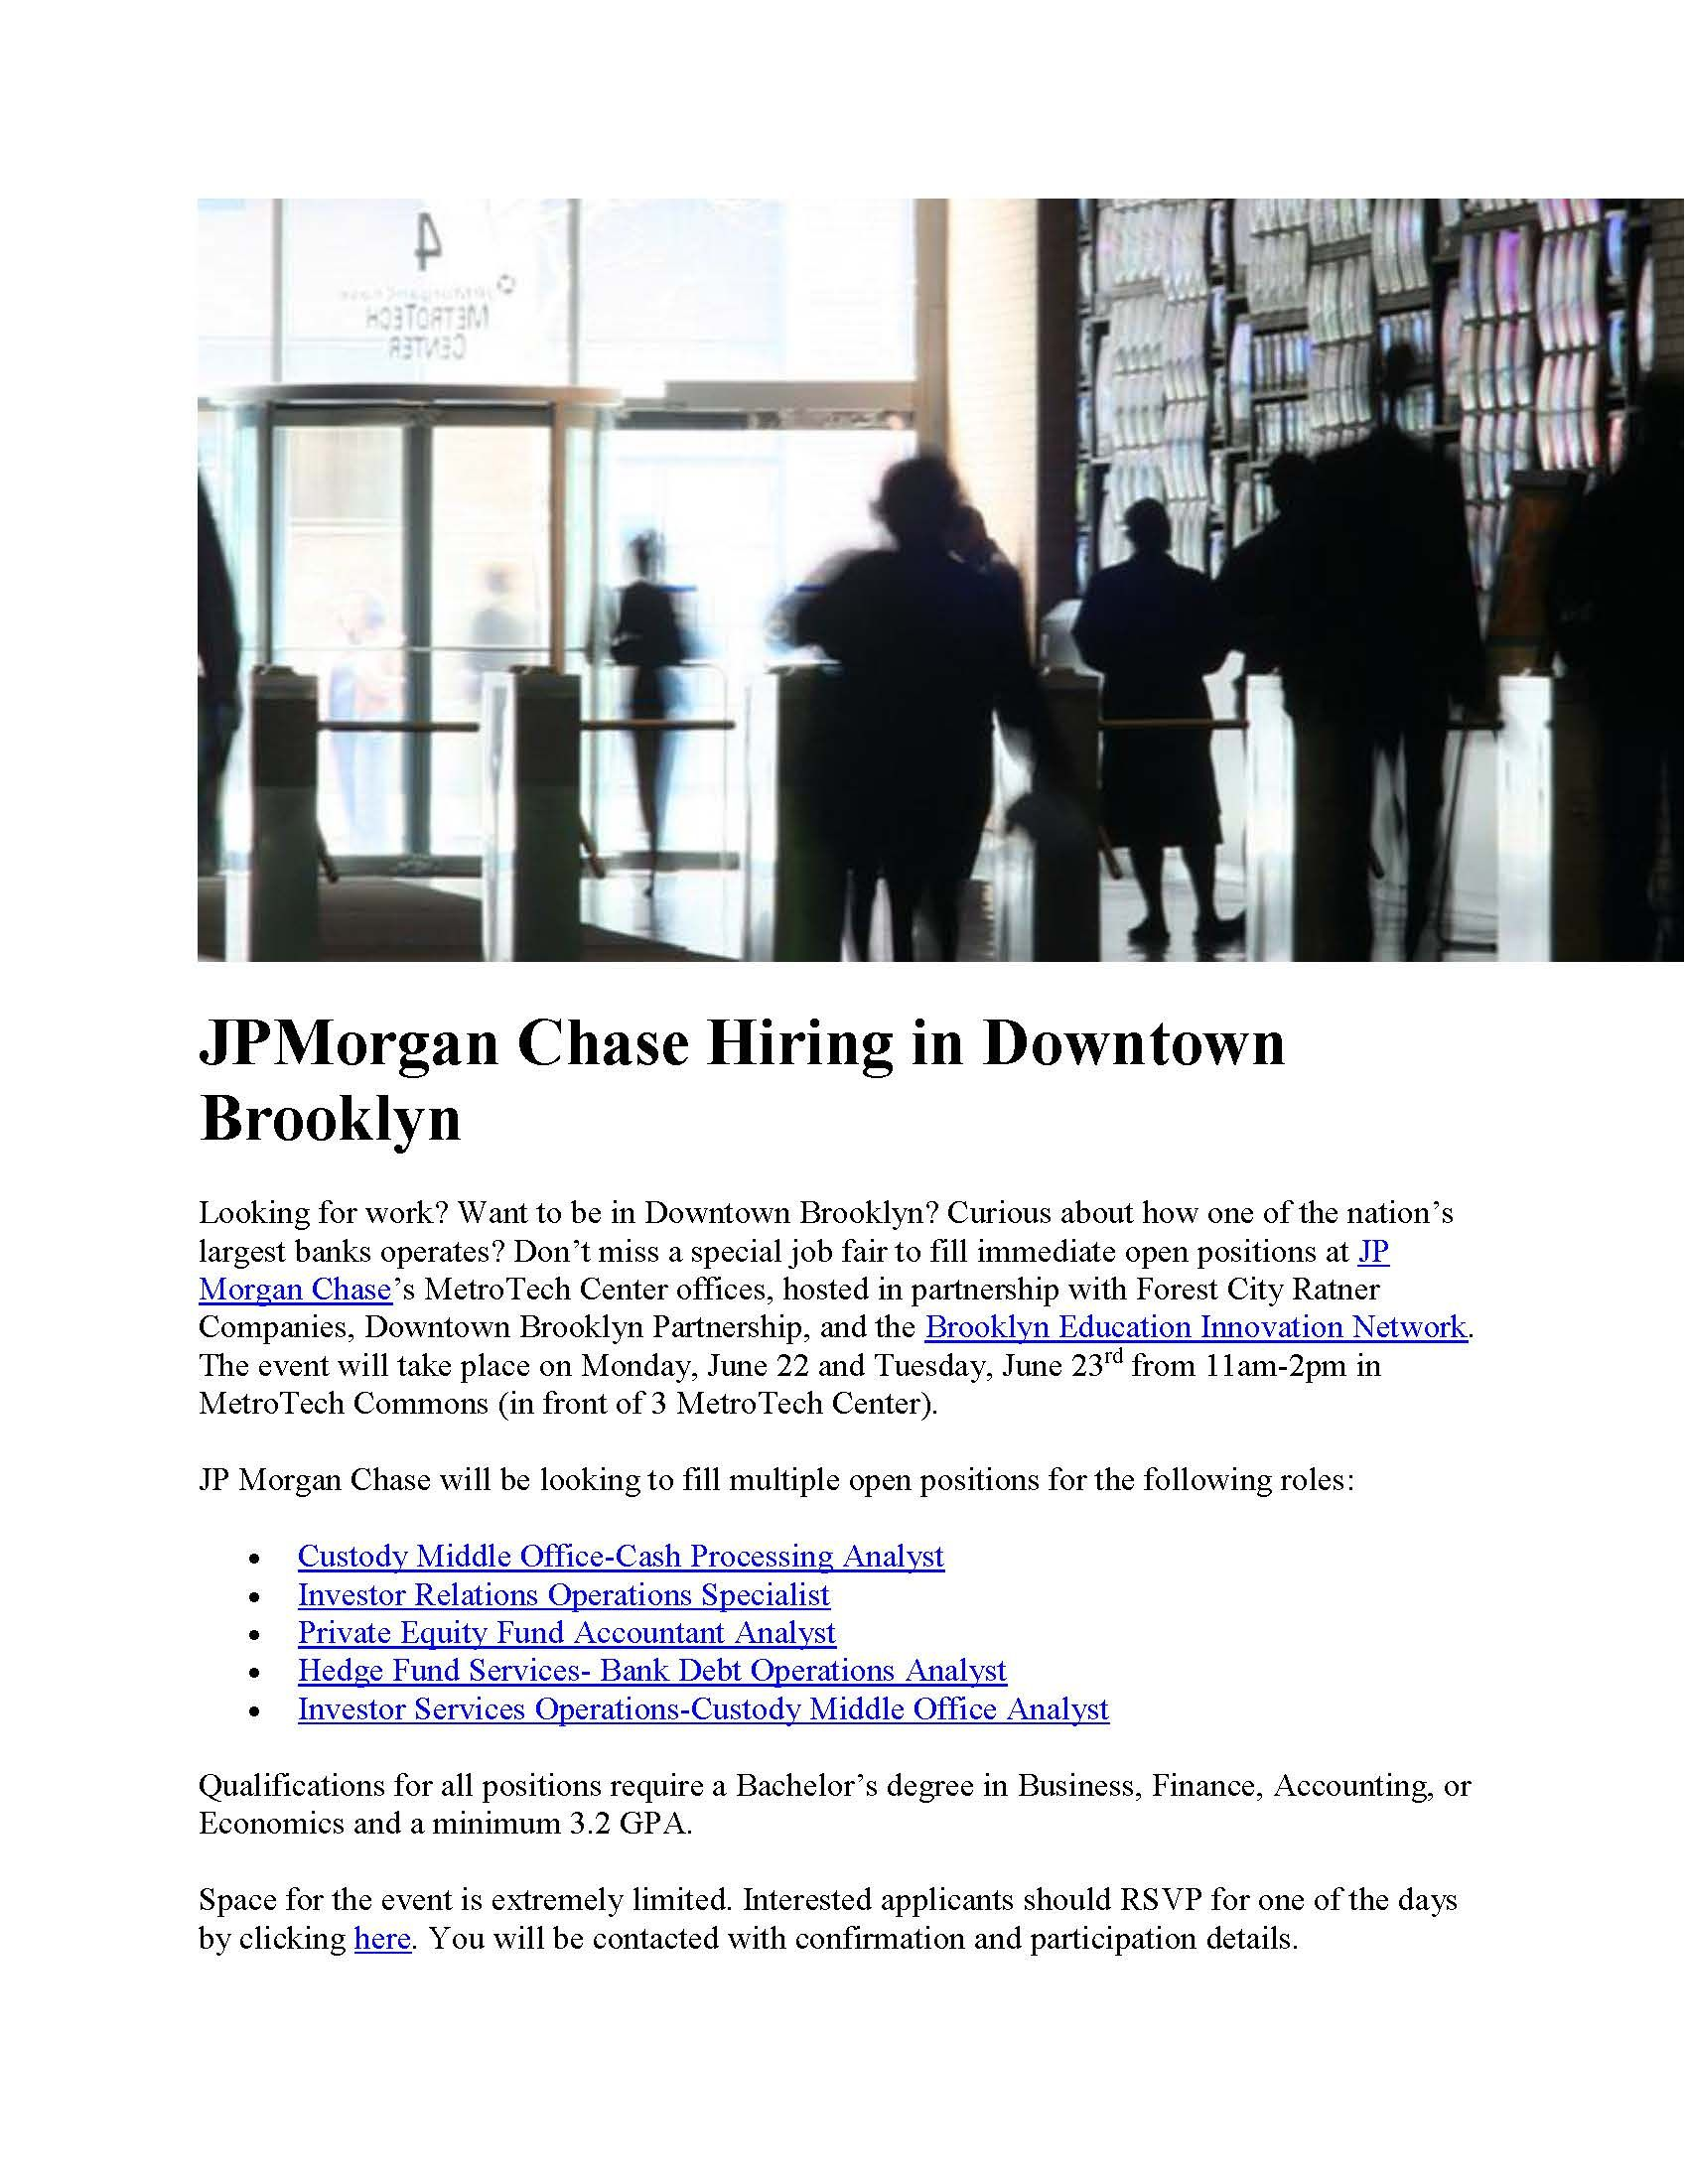 JP Morgan Chase positions in Downtown Brooklyn | Employment - Job